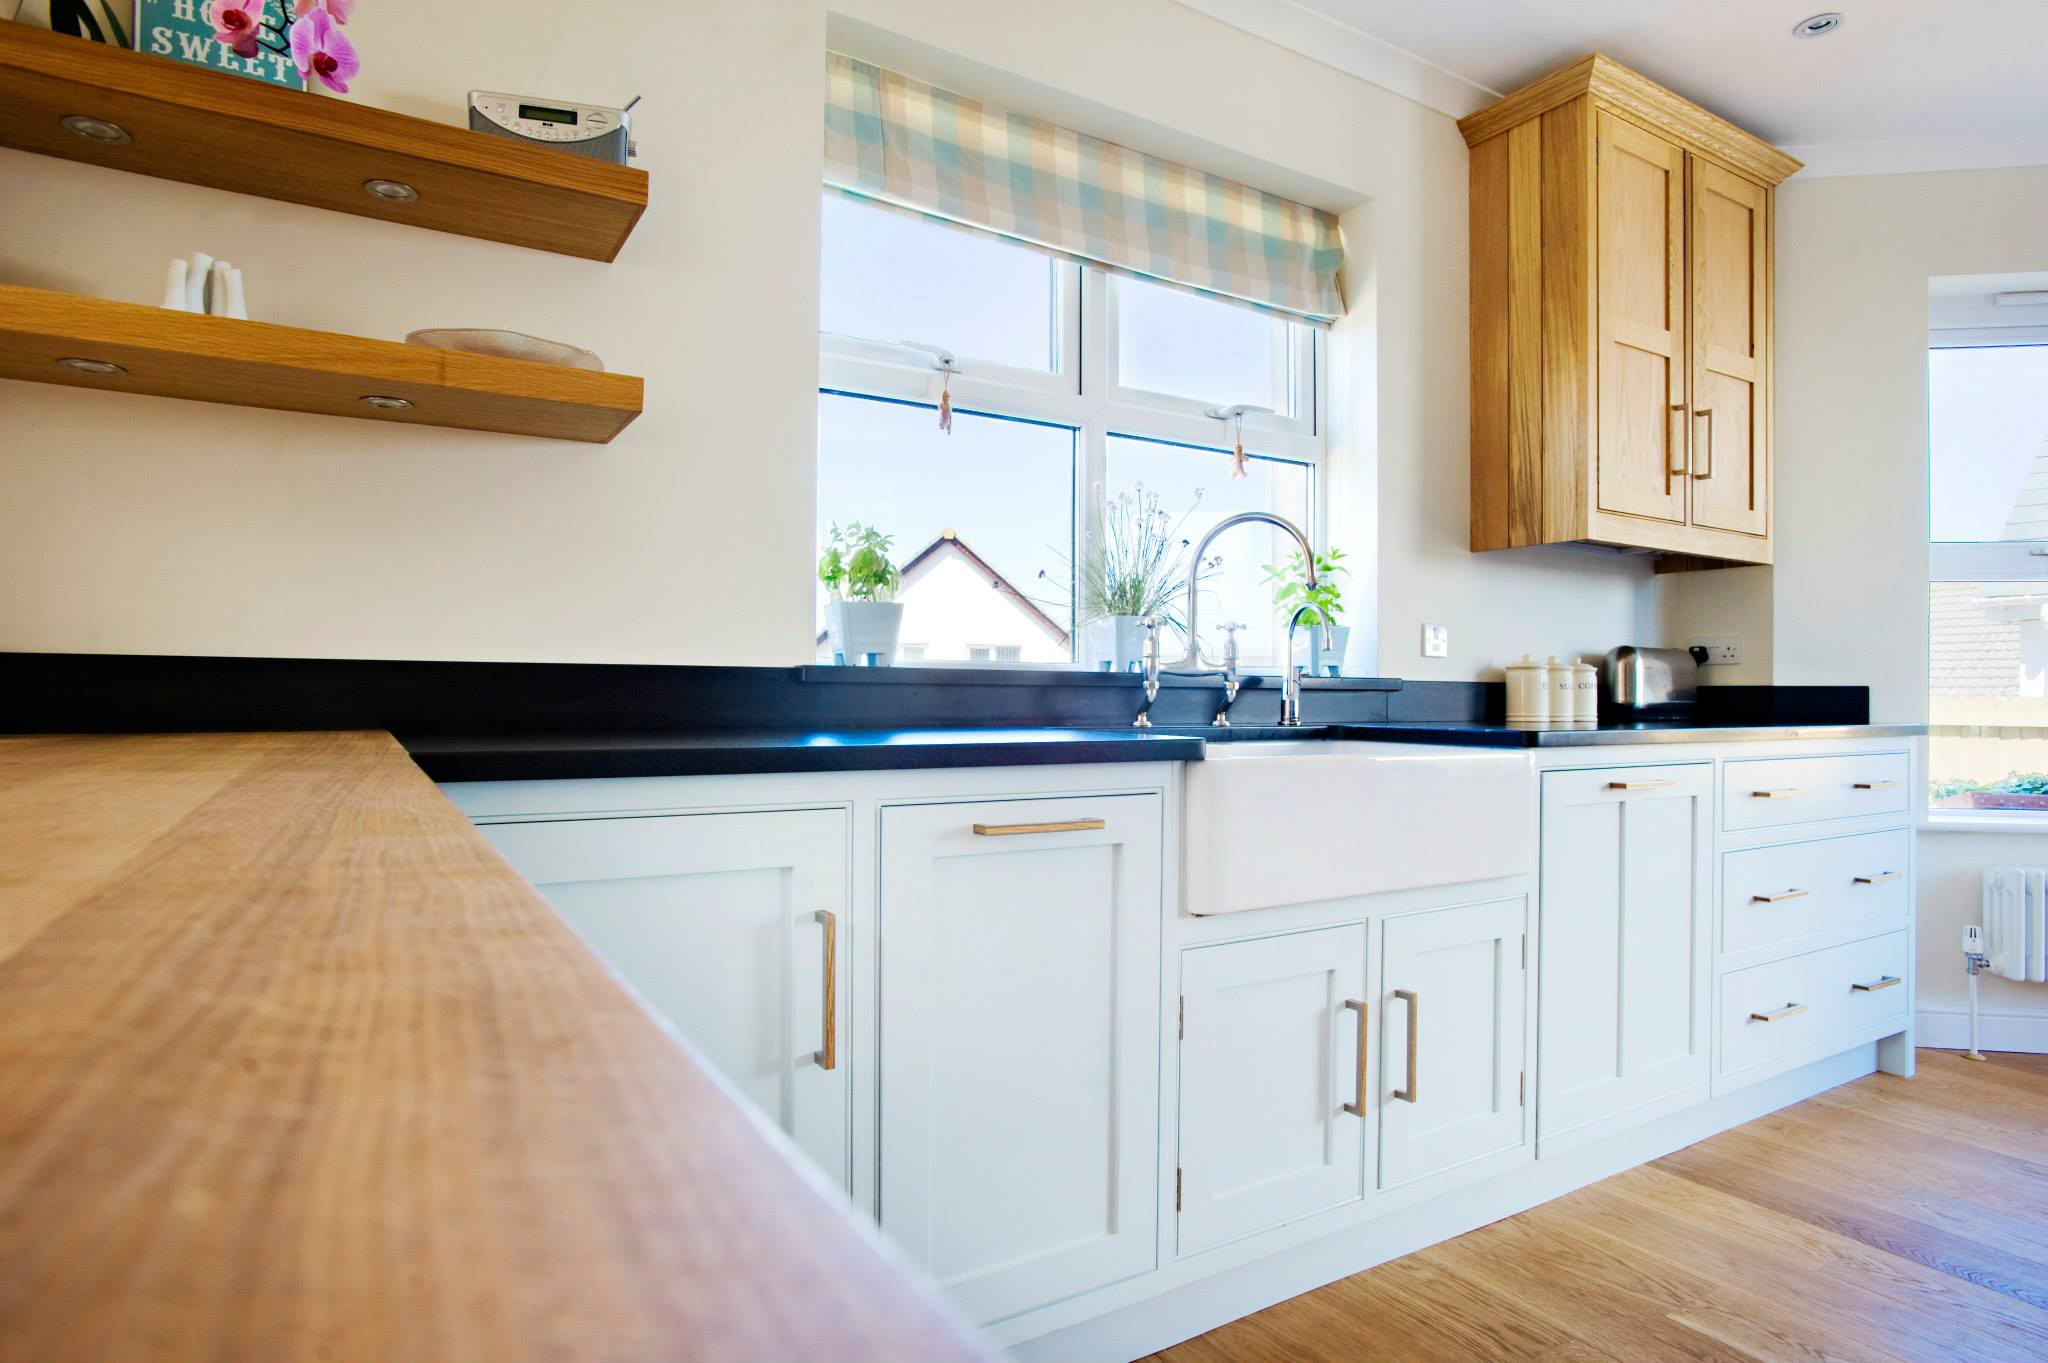 Stylish Breakfast Bar In A Different Material To The Worktop photo - 8